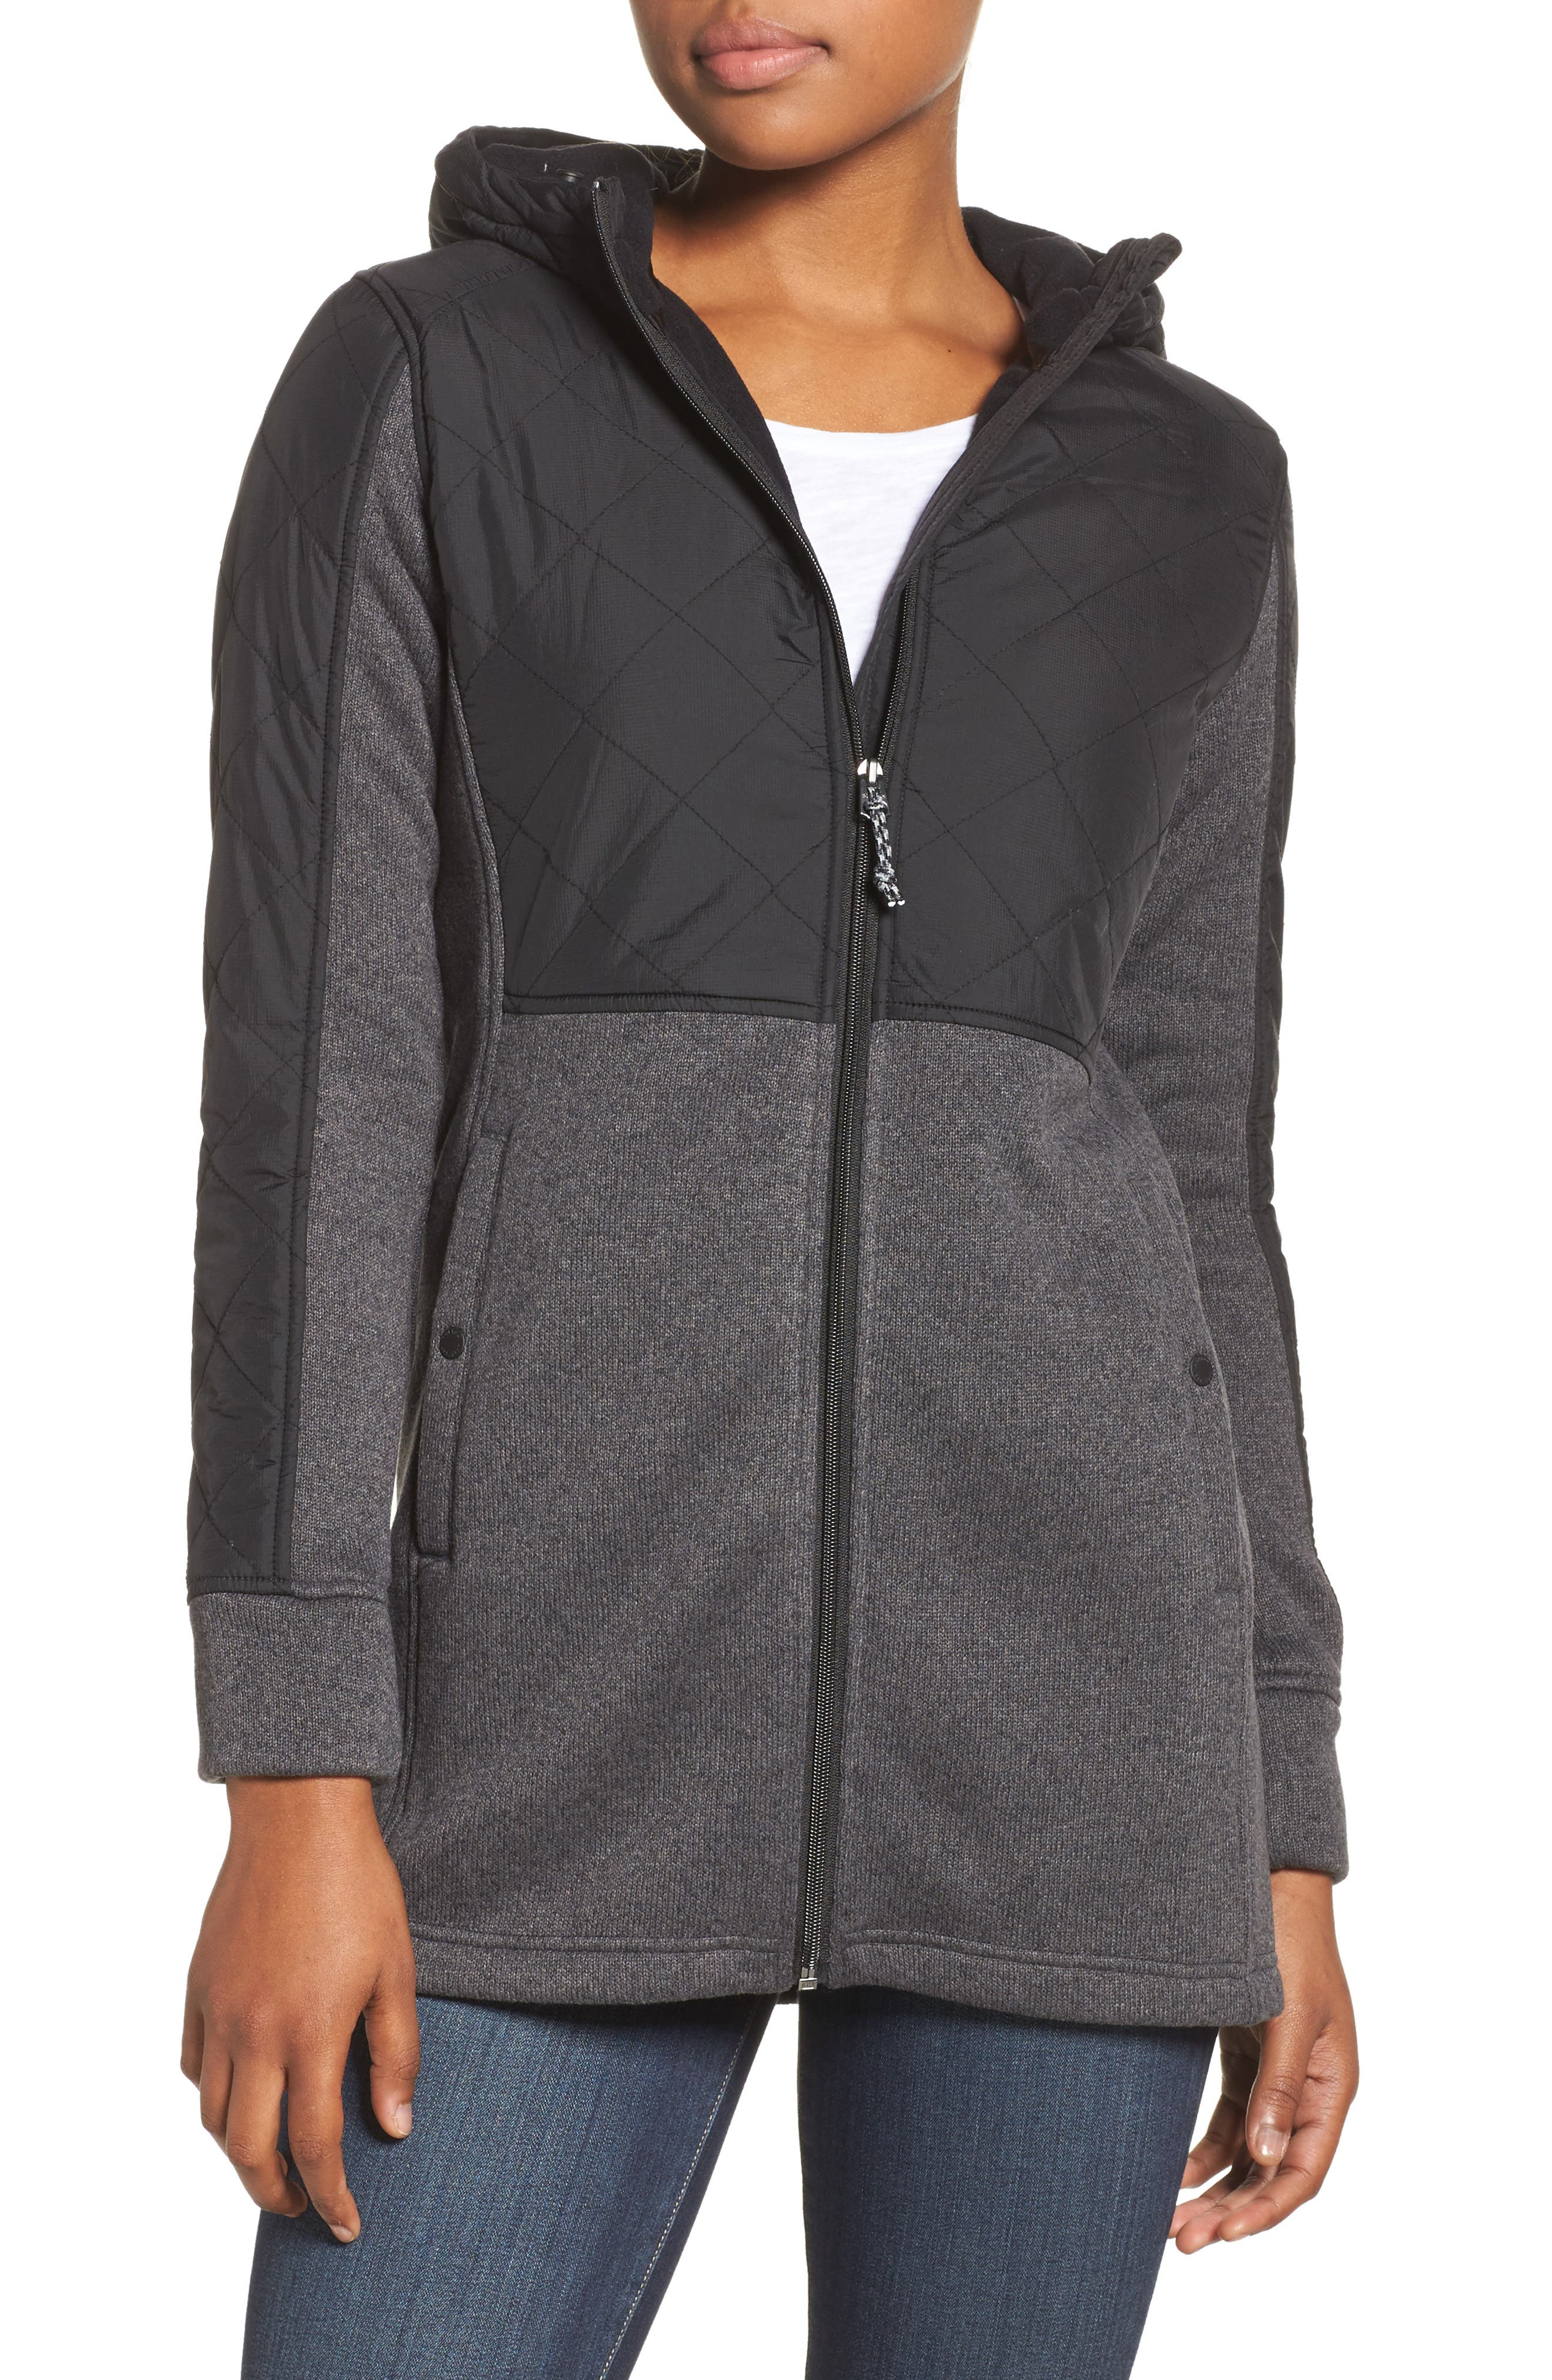 Embry Water Repellent Hooded Jacket,                         Main,                         color, True Black Heather